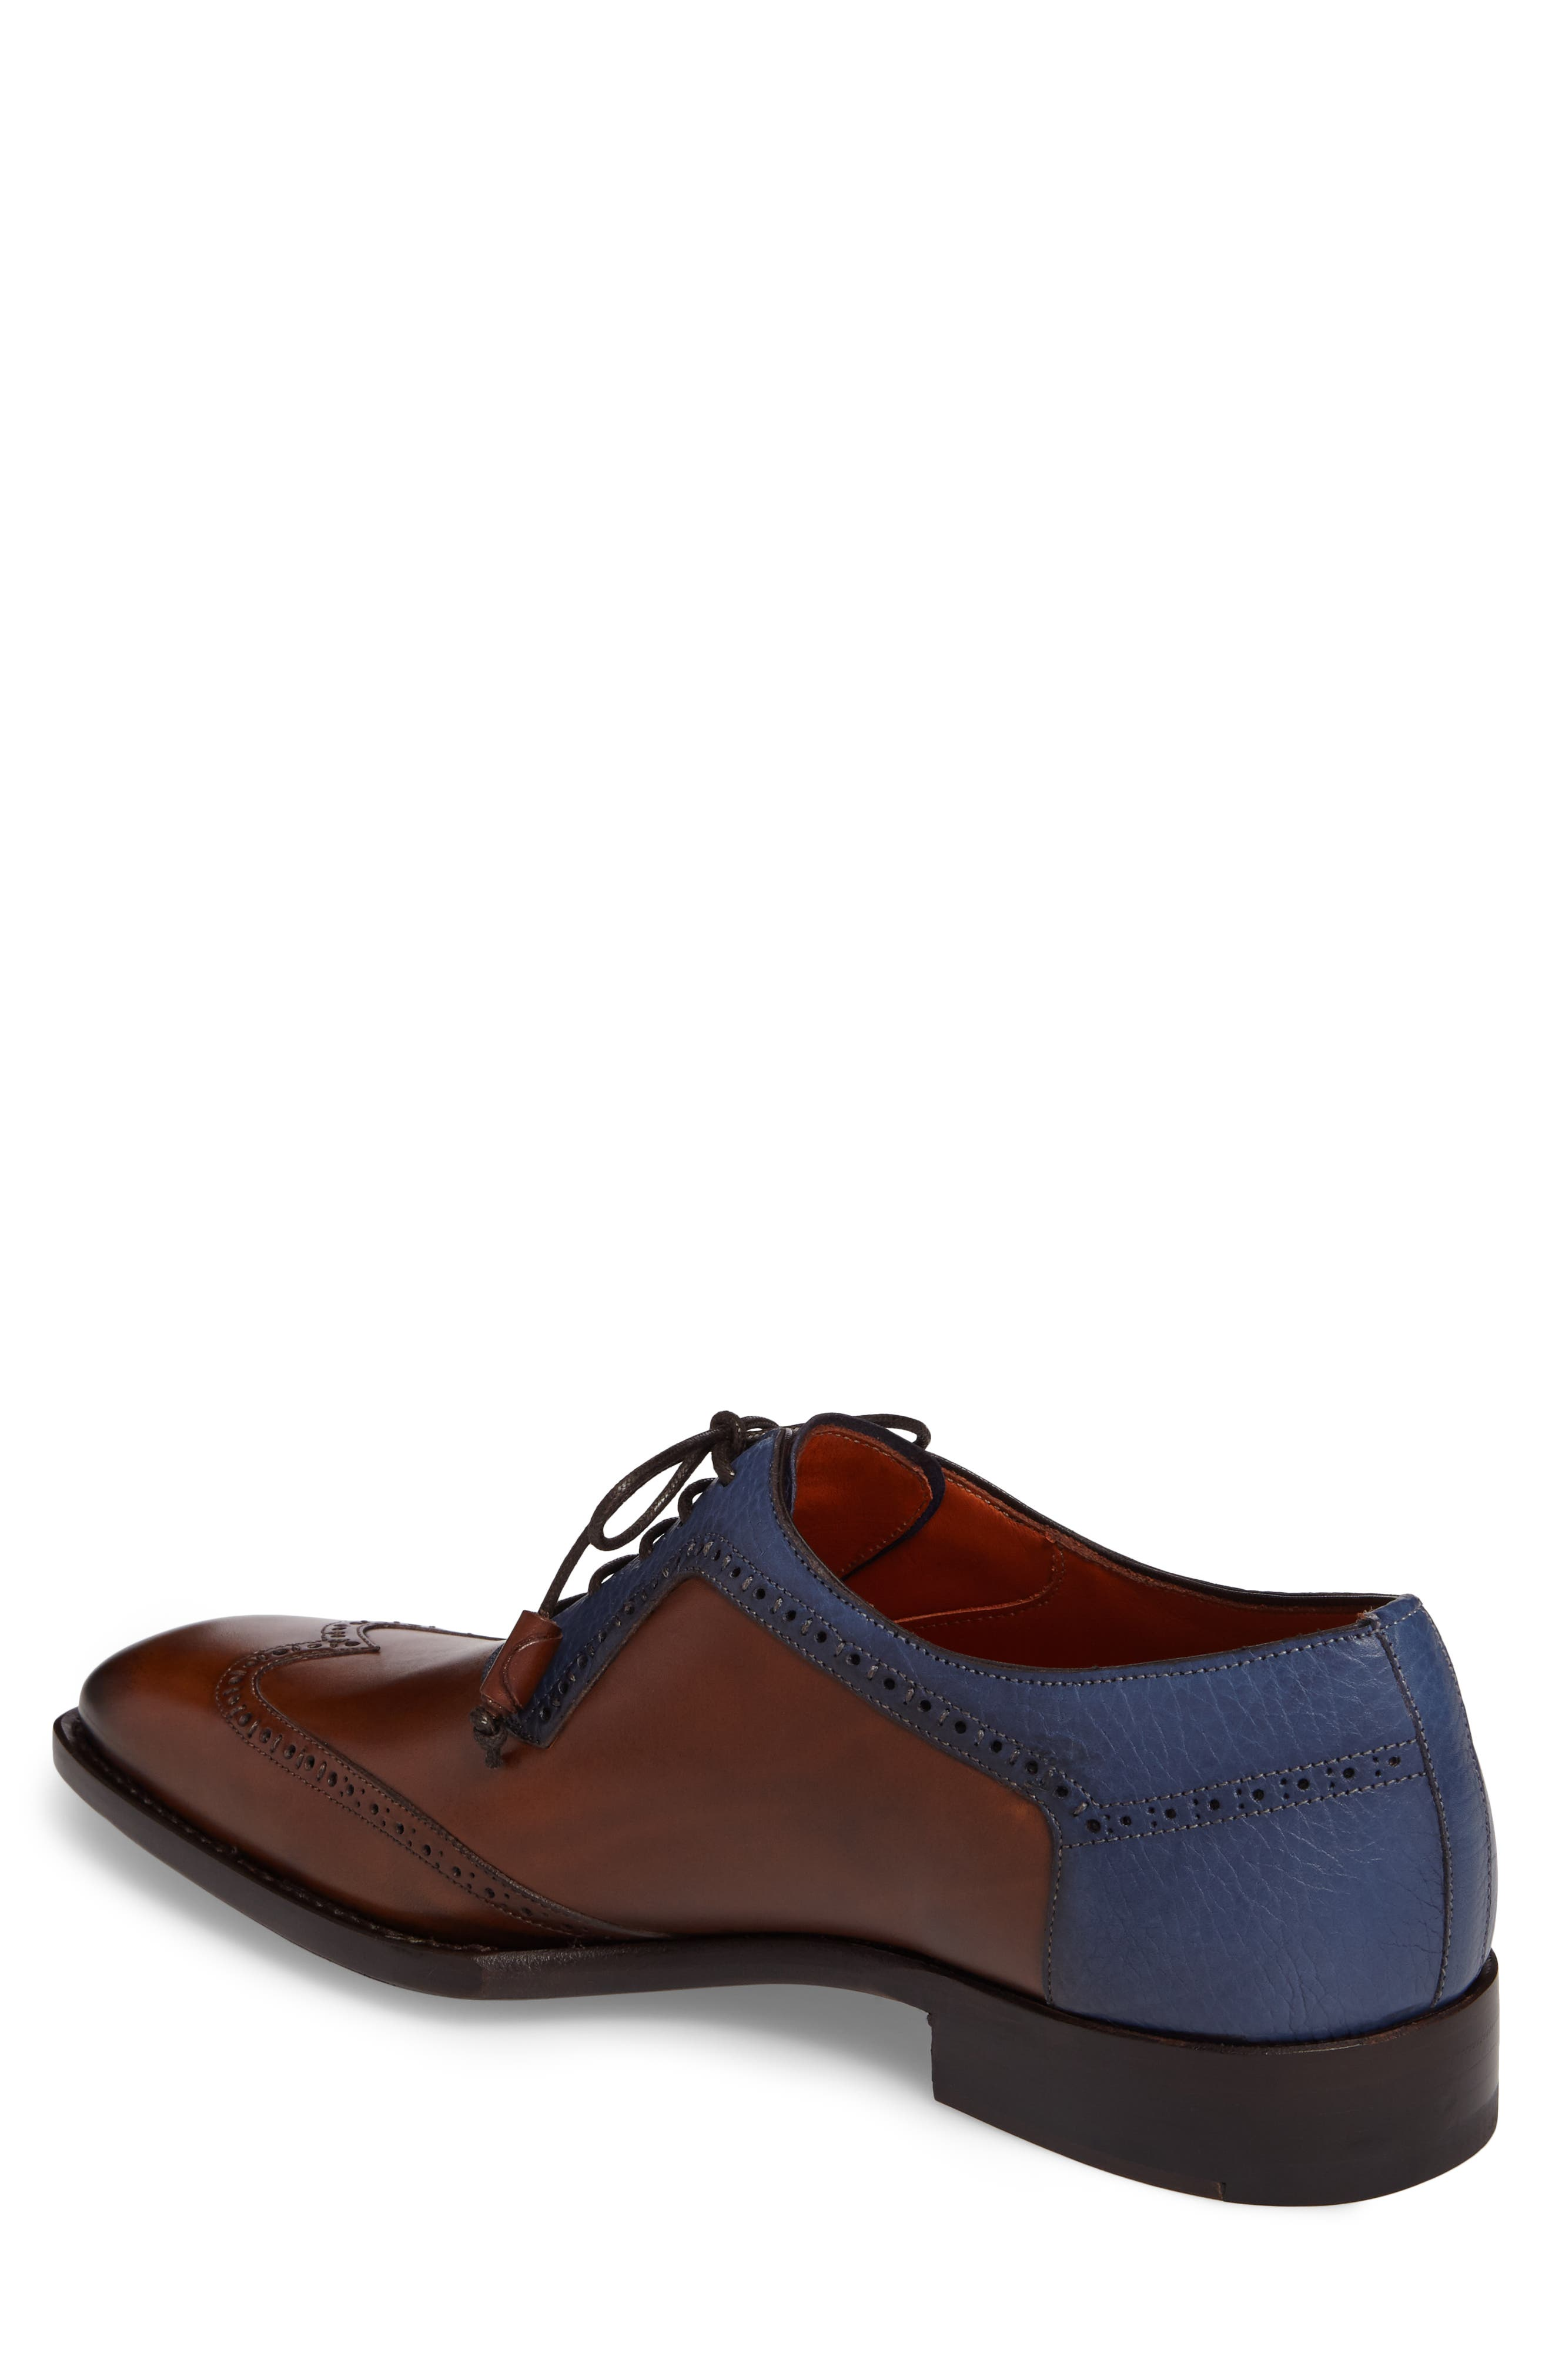 Conil Wingtip,                             Alternate thumbnail 2, color,                             COGNAC/ BLUE LEATHER